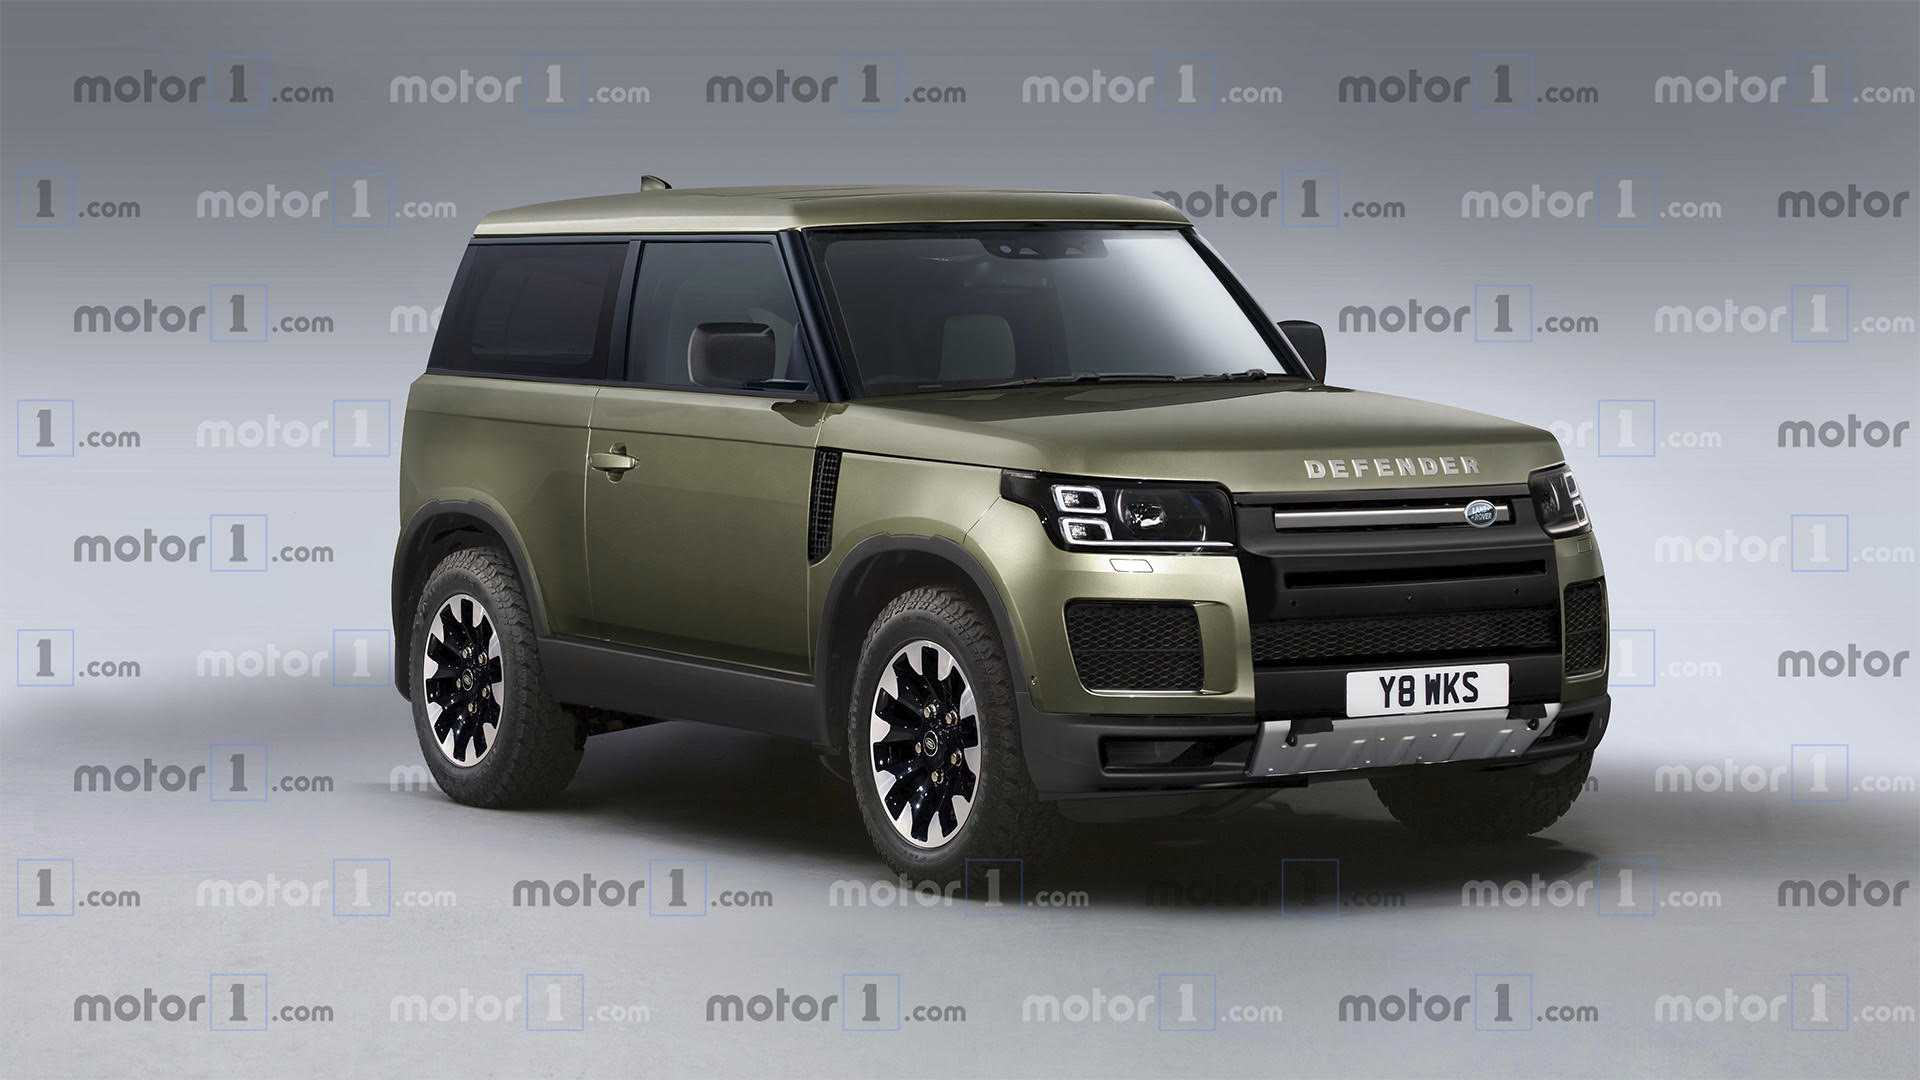 48 All New Jeep Defender 2020 Redesign And Concept